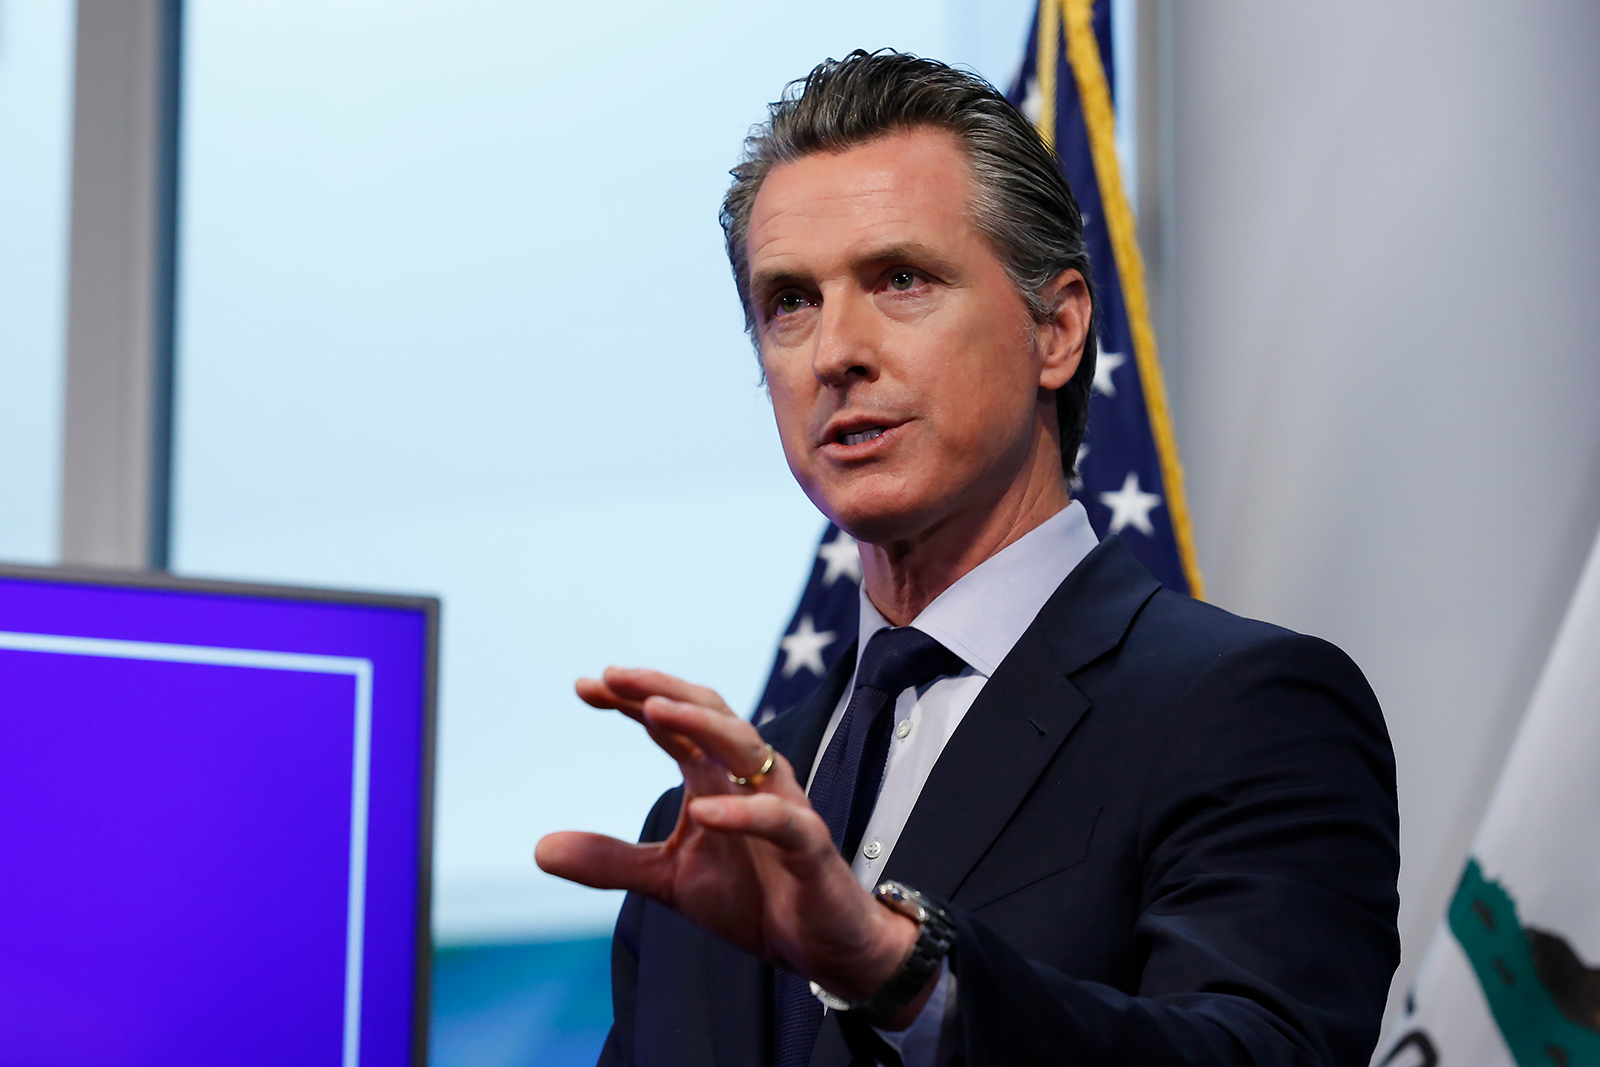 California Gov. Gavin Newsom speaks during a news conference in Sacramento, California, on April 14.